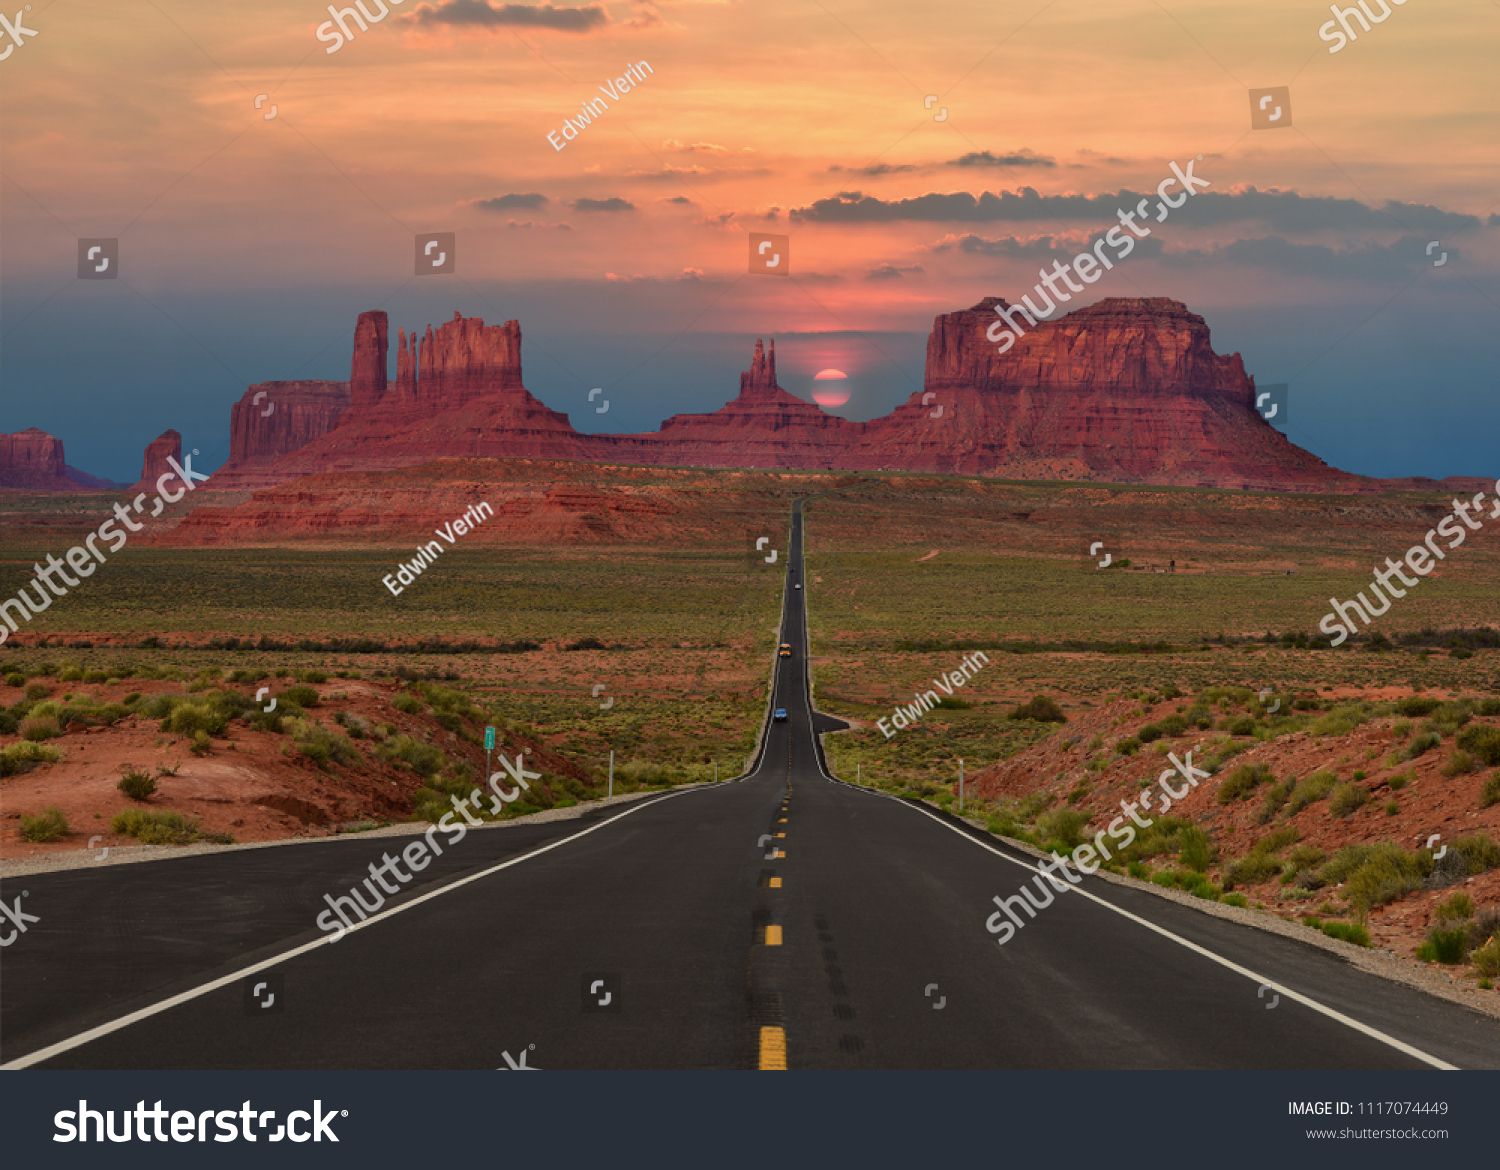 Scenic highway in Monument Valley Tribal Park in Arizona-Utah border, U.S.A. at sunset. #1117074449